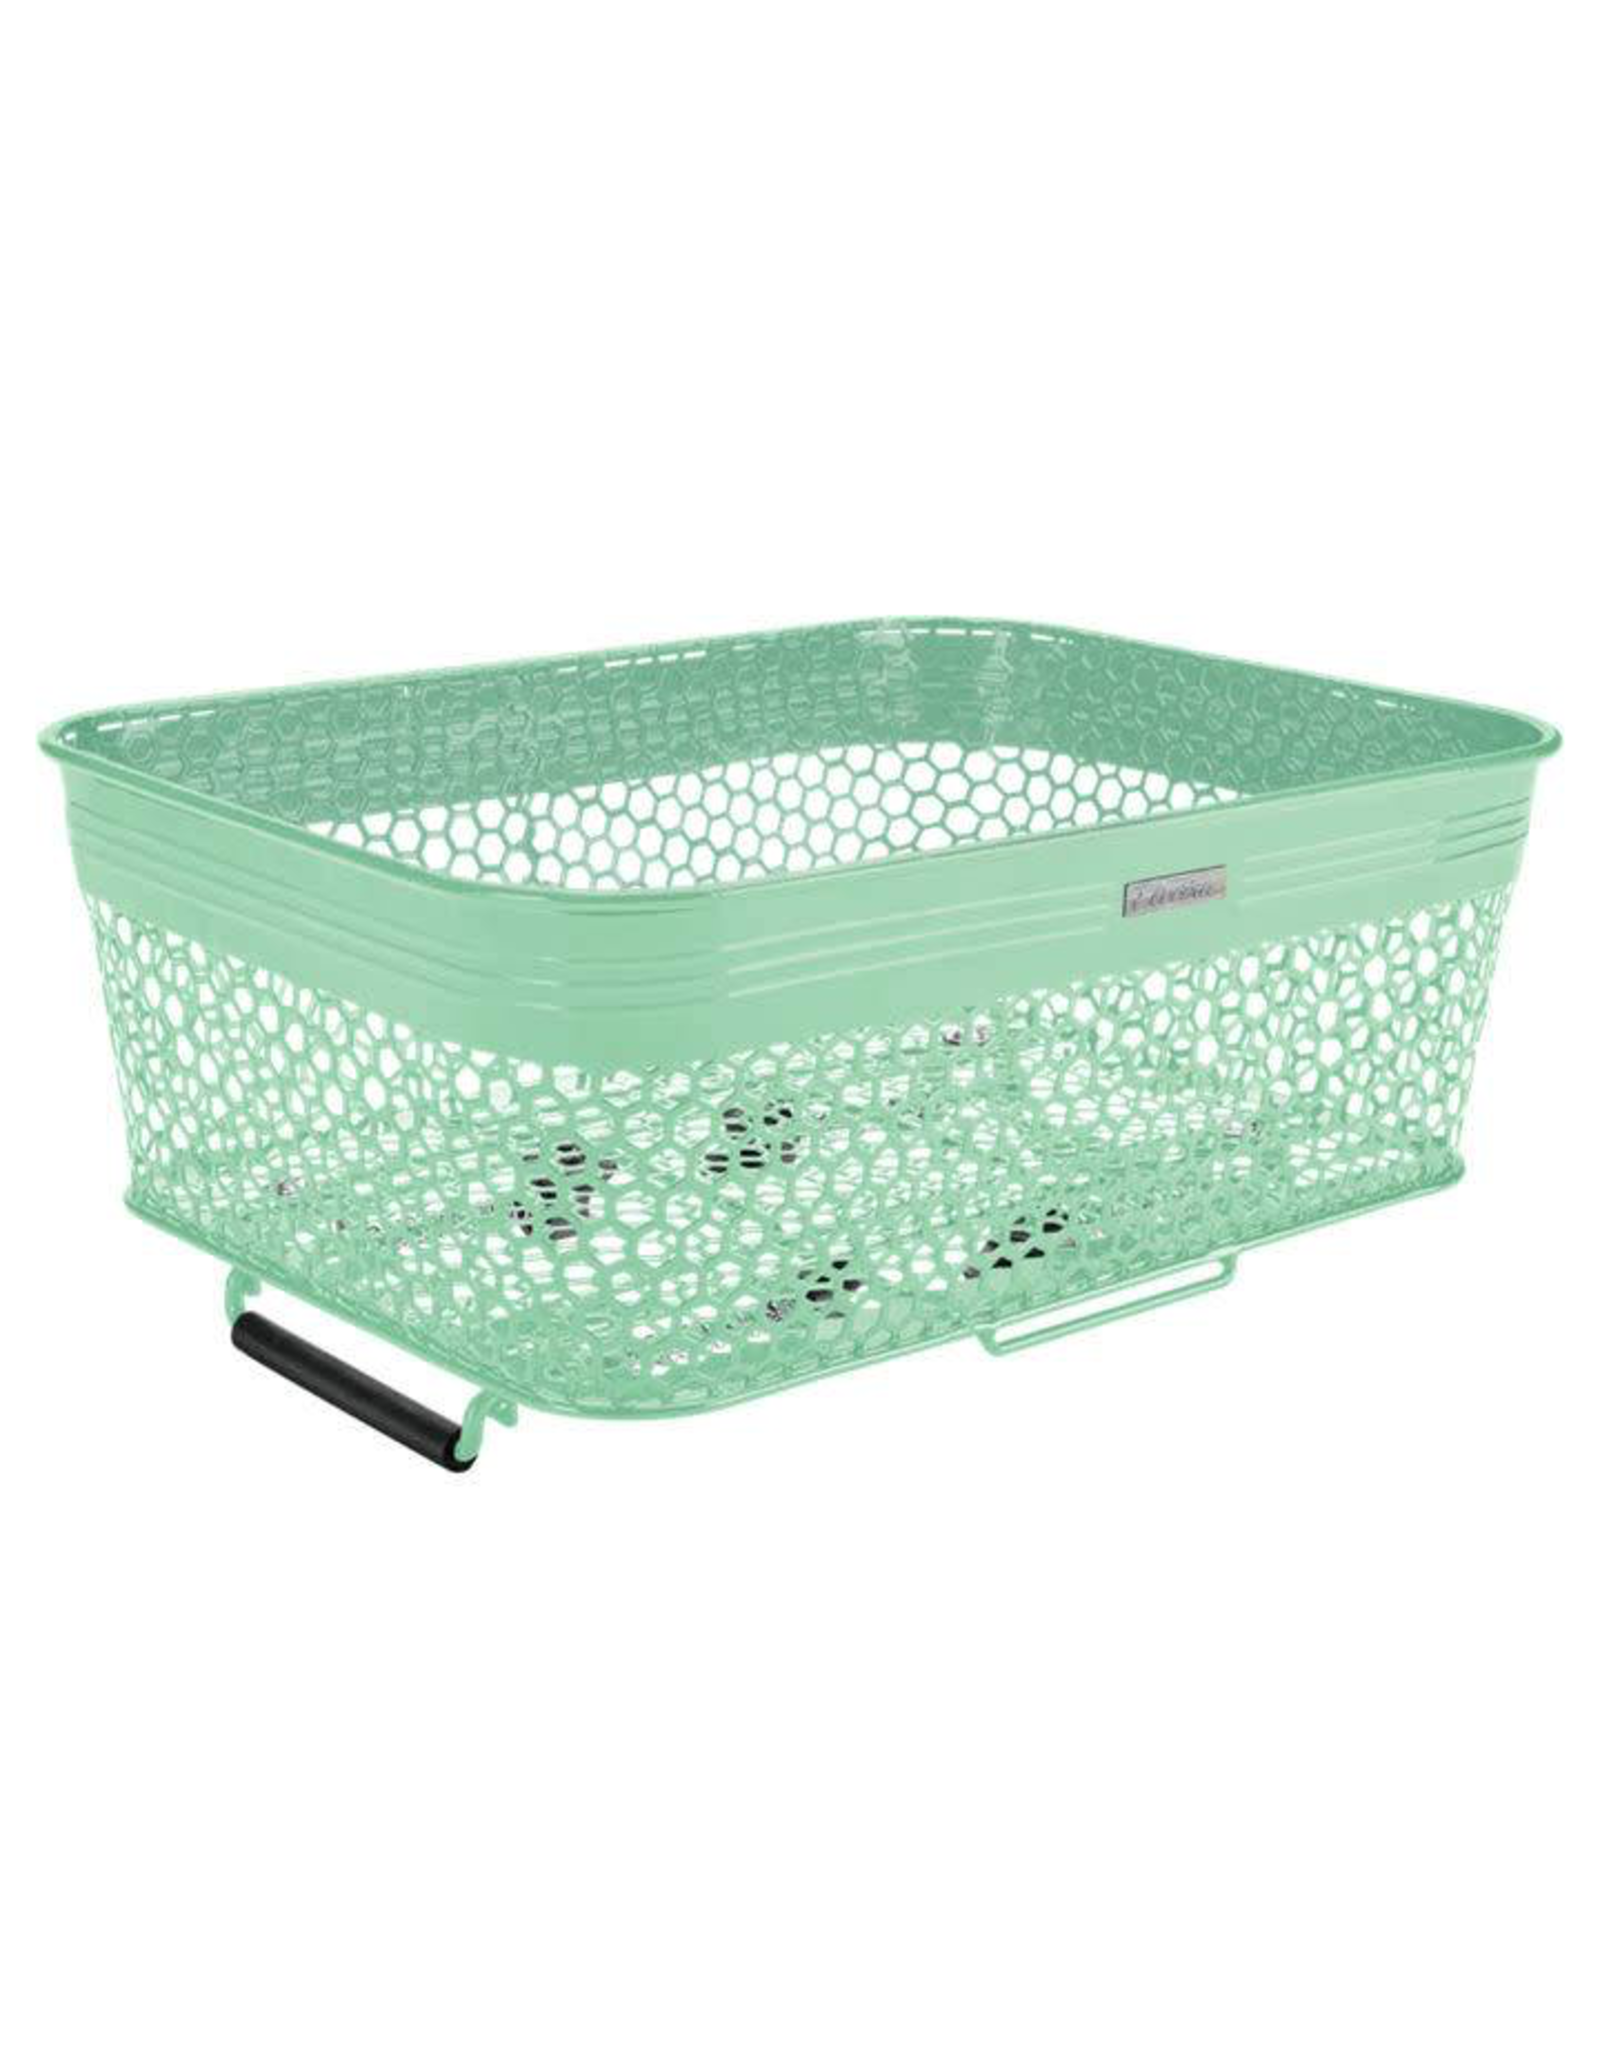 Electra Electra Linear Rear QR Mesh Mint Basket w/ Net